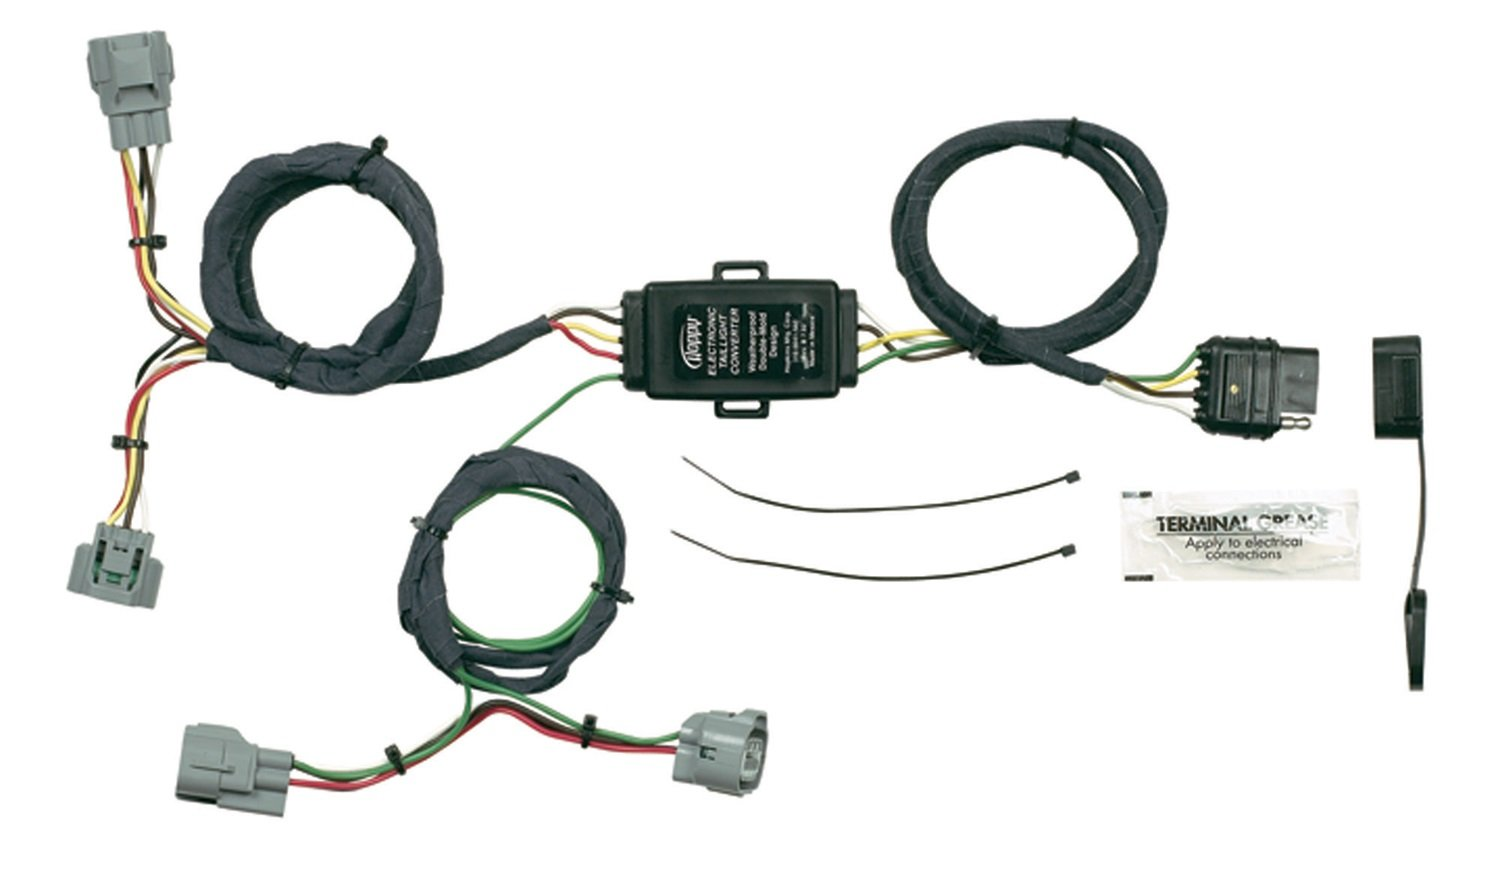 61J3Pn4wzzL._SL1500_ amazon com hopkins 43355 plug in simple vehicle wiring kit 2009 toyota tacoma trailer wiring harness at bayanpartner.co